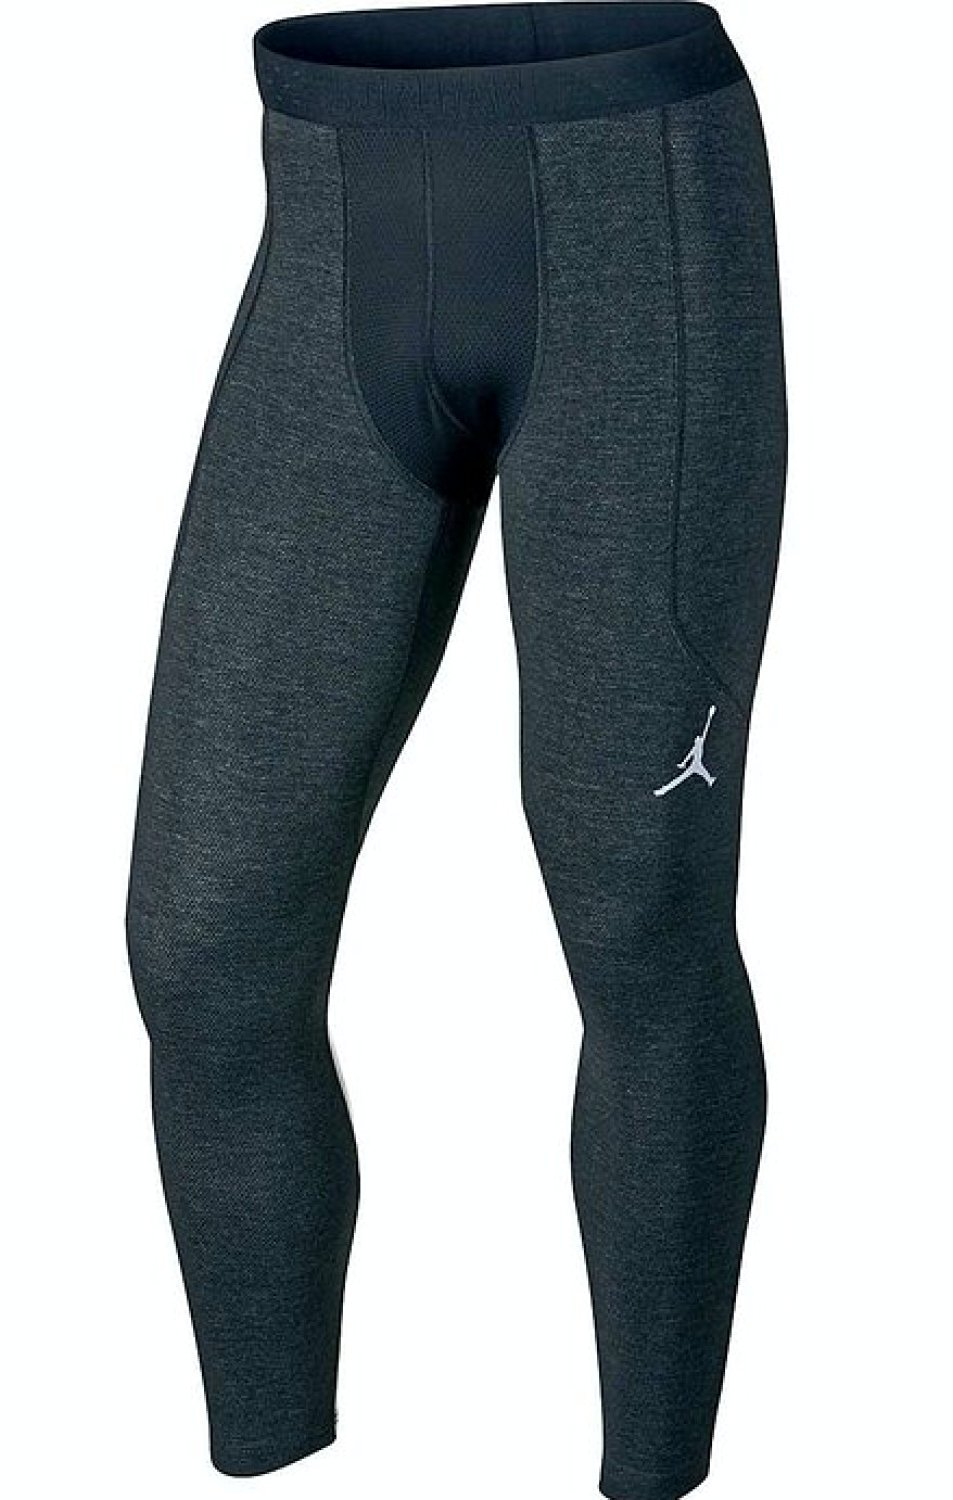 f87edc651c1 Nike Air Jordan Compression Dri Fit Stay Warm Men's Tights Pants Size 3XL